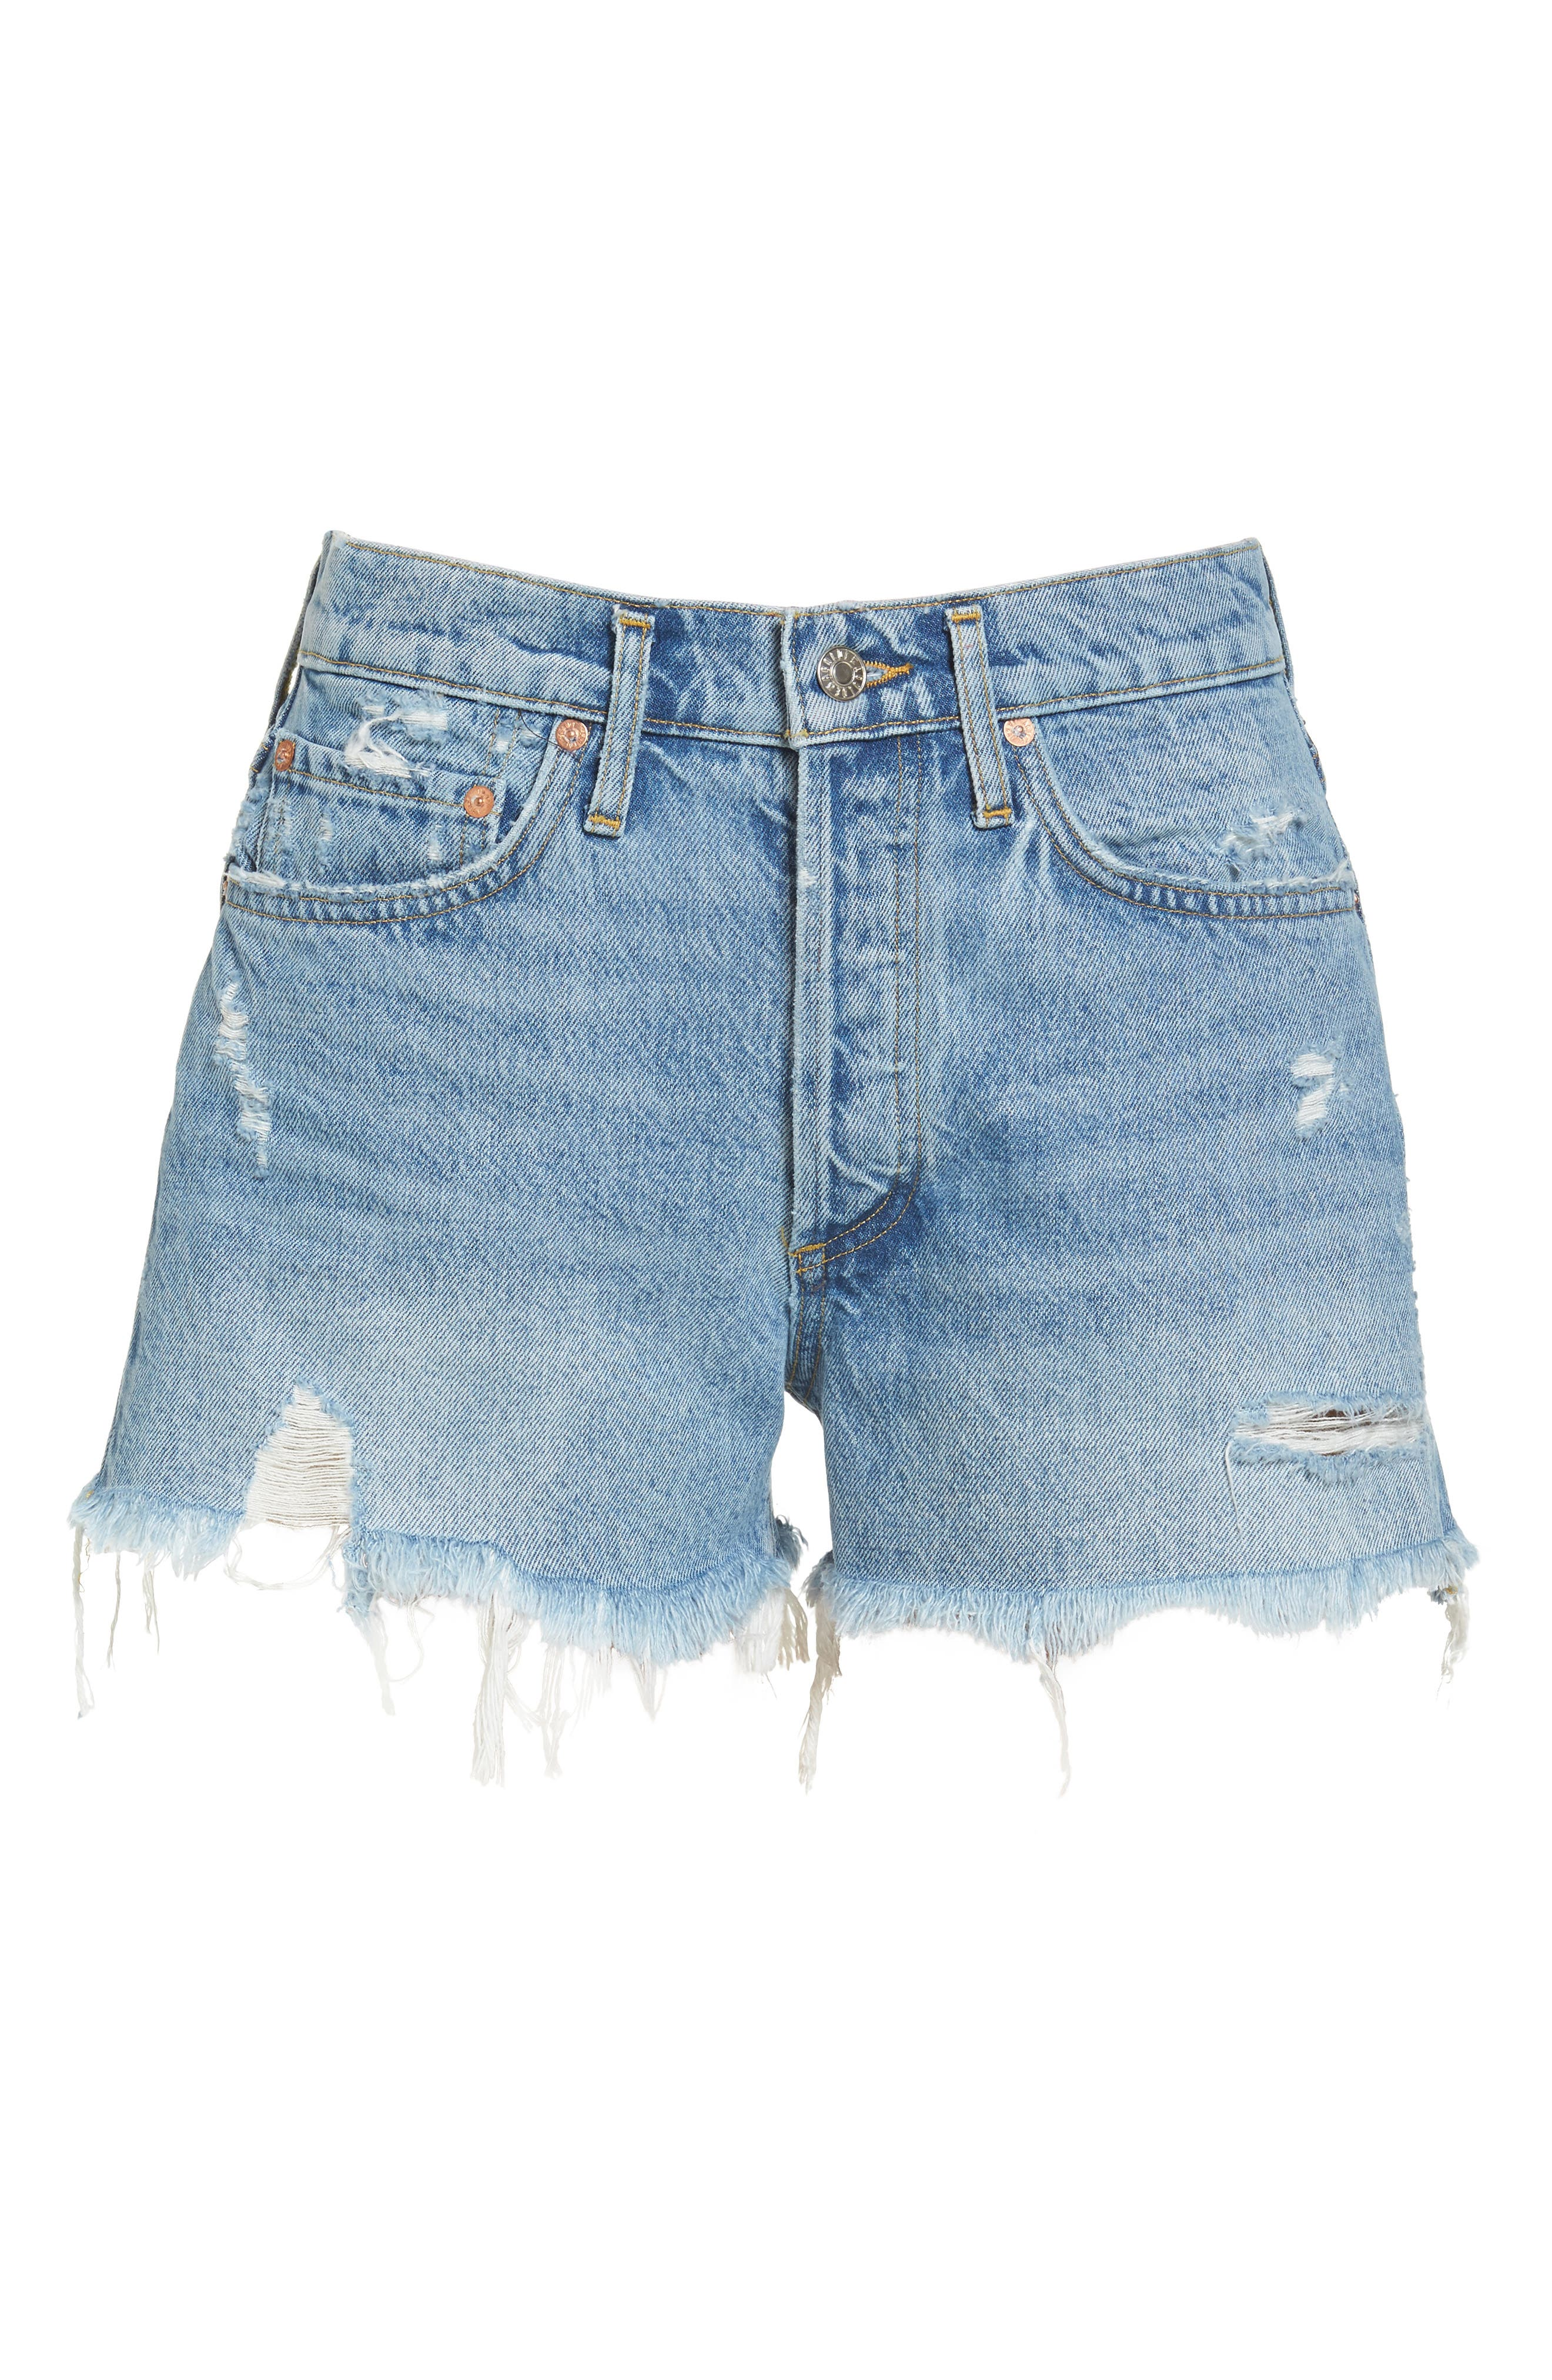 Parker Distressed Denim Shorts,                             Alternate thumbnail 6, color,                             Swapmeet